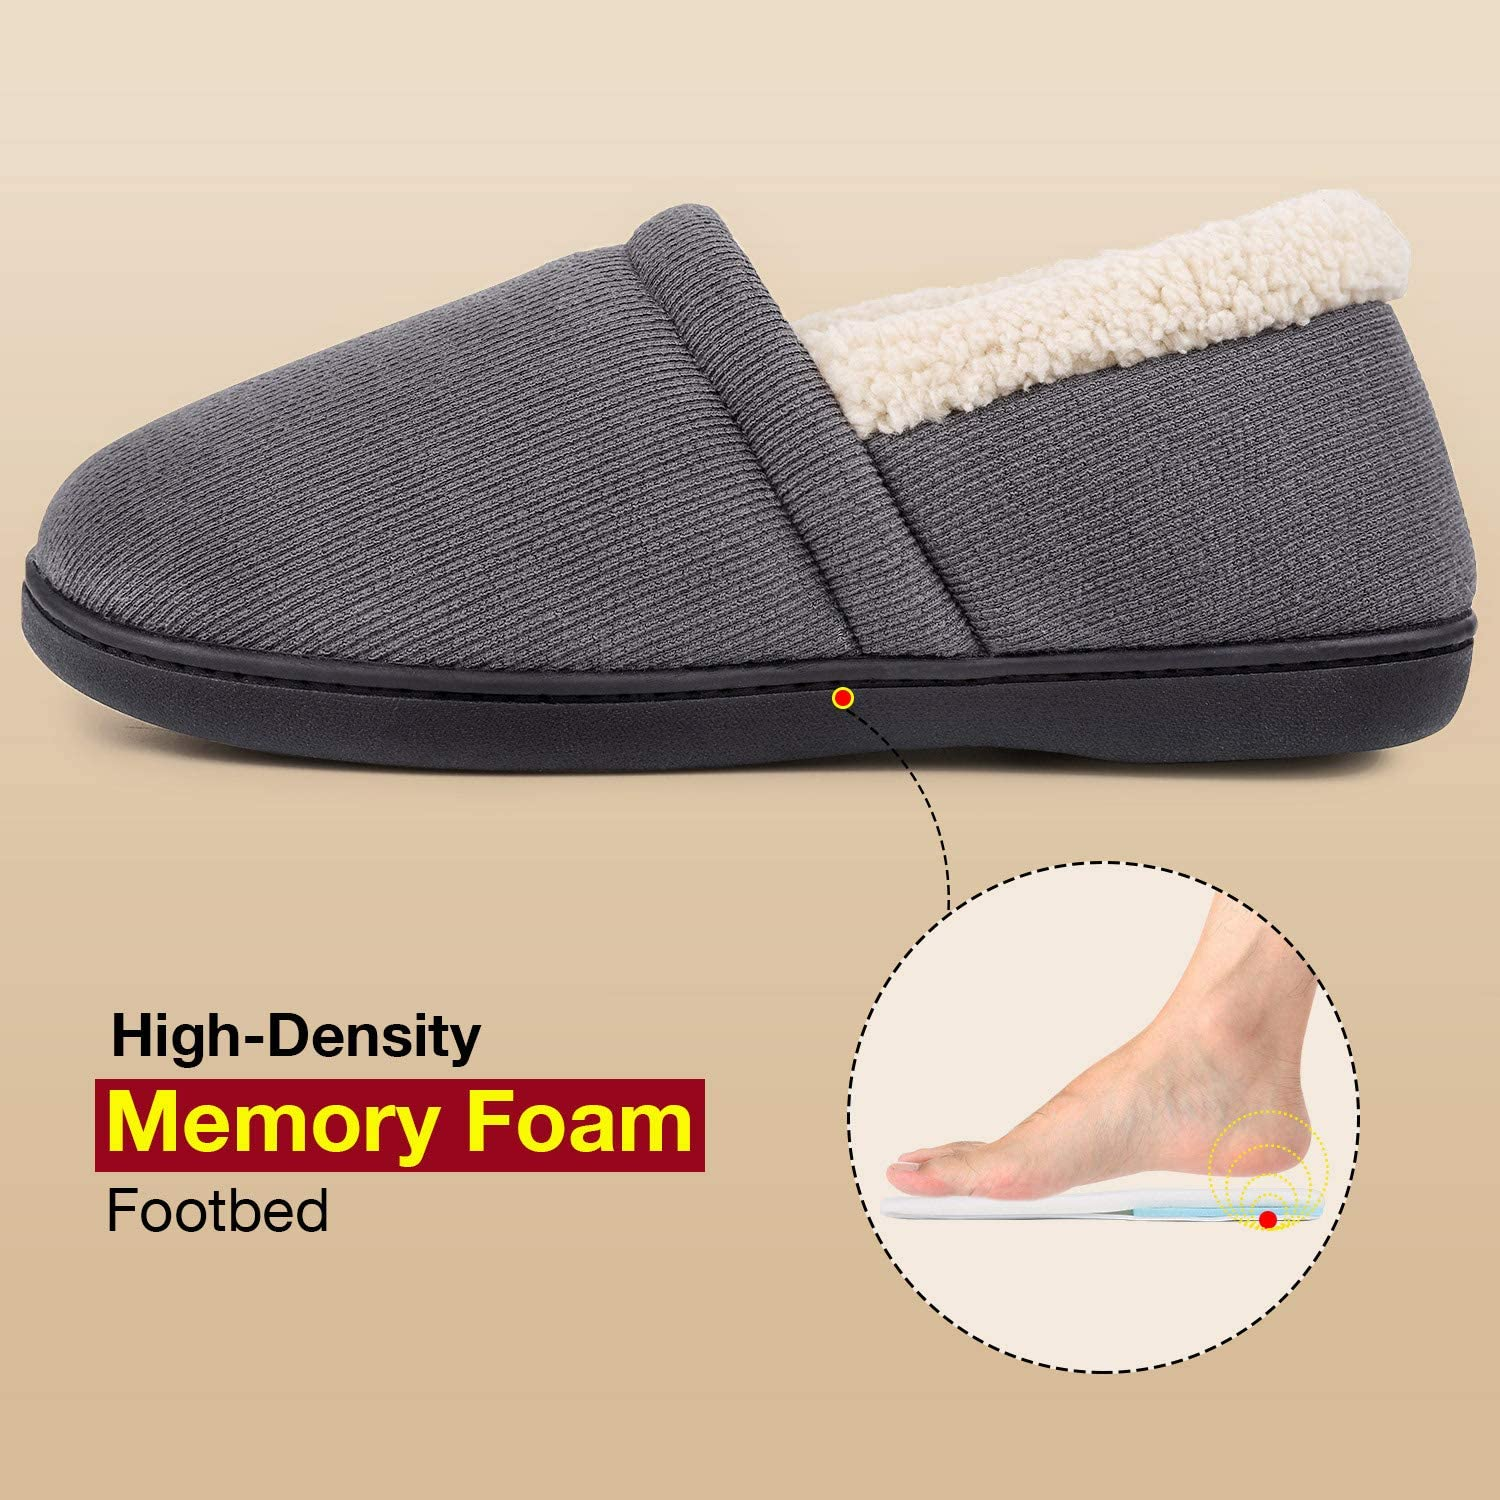 Men's House Shoes Slippers Comfy Fuzzy Knit Cotton Memory Foam w//Indoor Outdoor